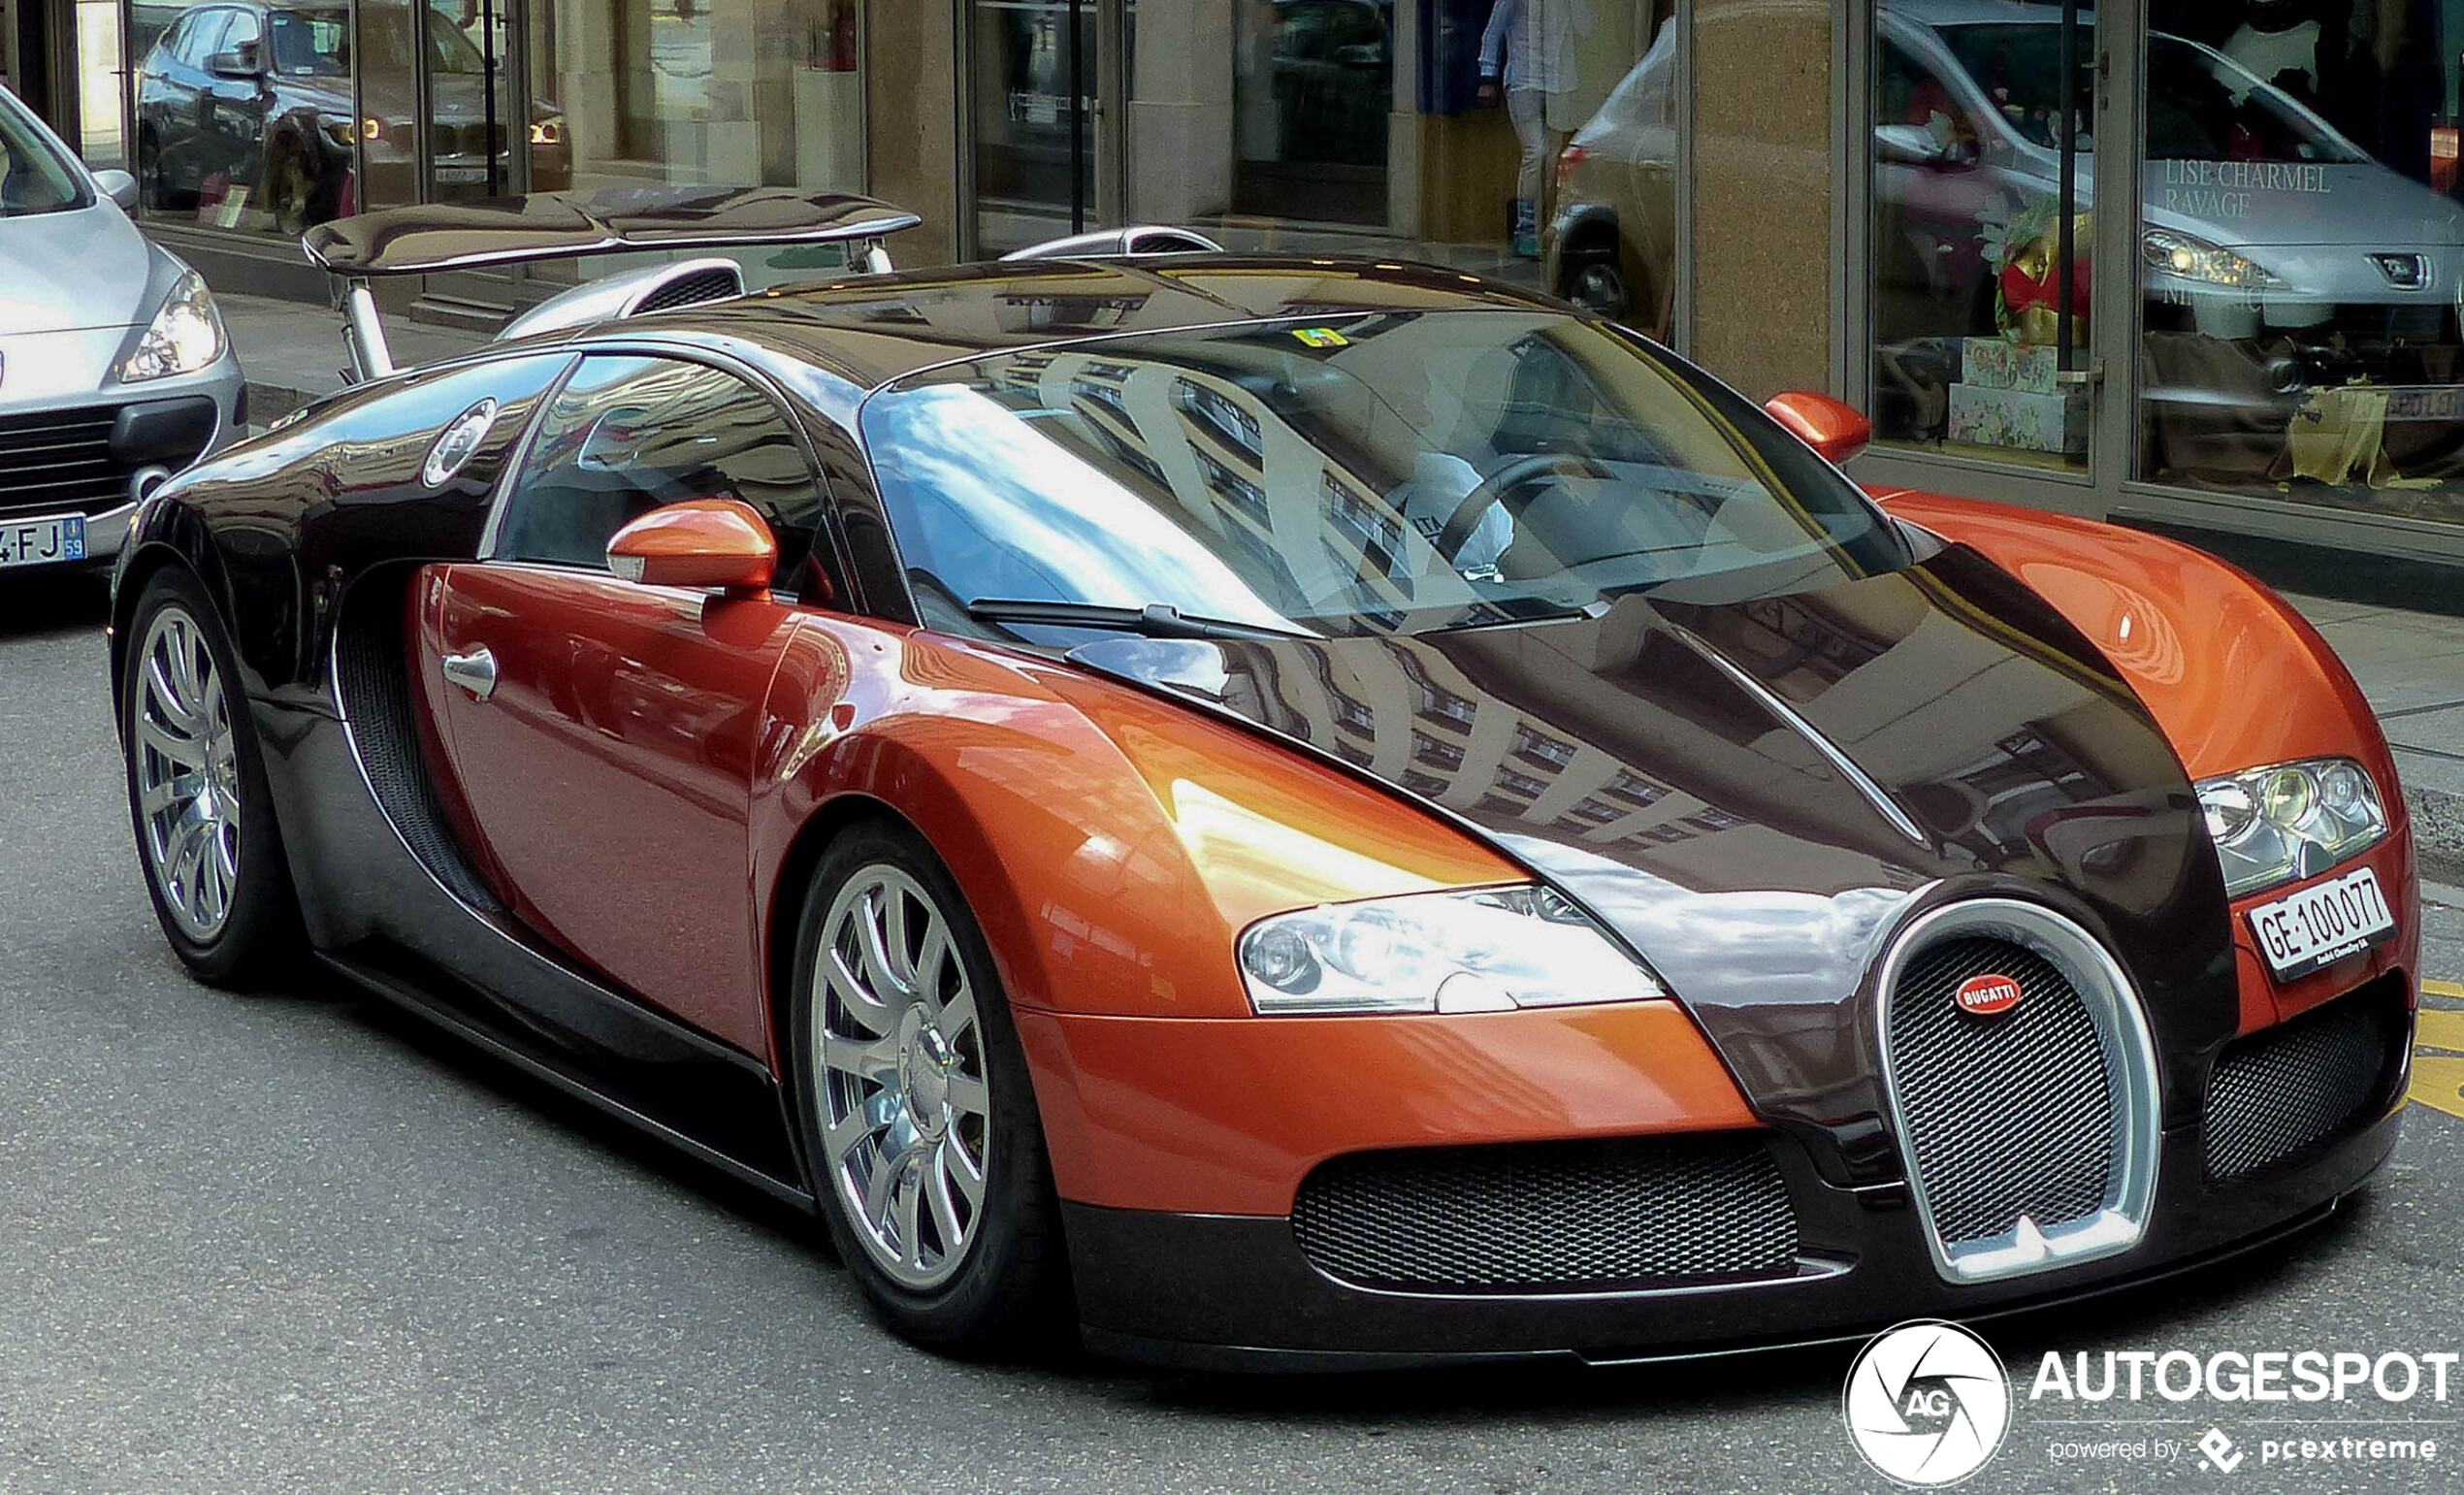 2020 Bugatti Veyron Price, Design and Review